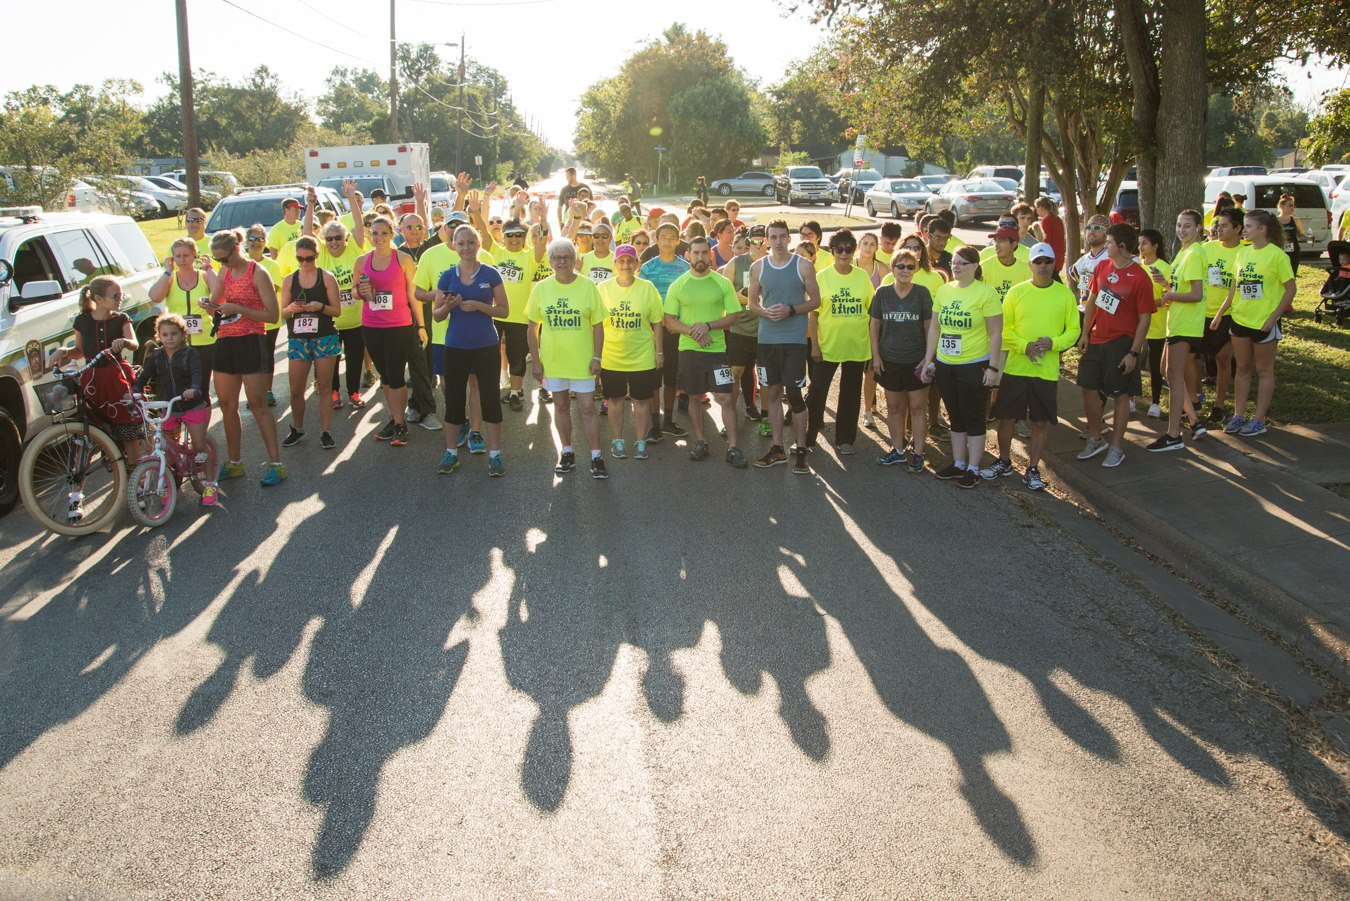 Runners and walkers line up for last year's 5K Stride & Stroll.